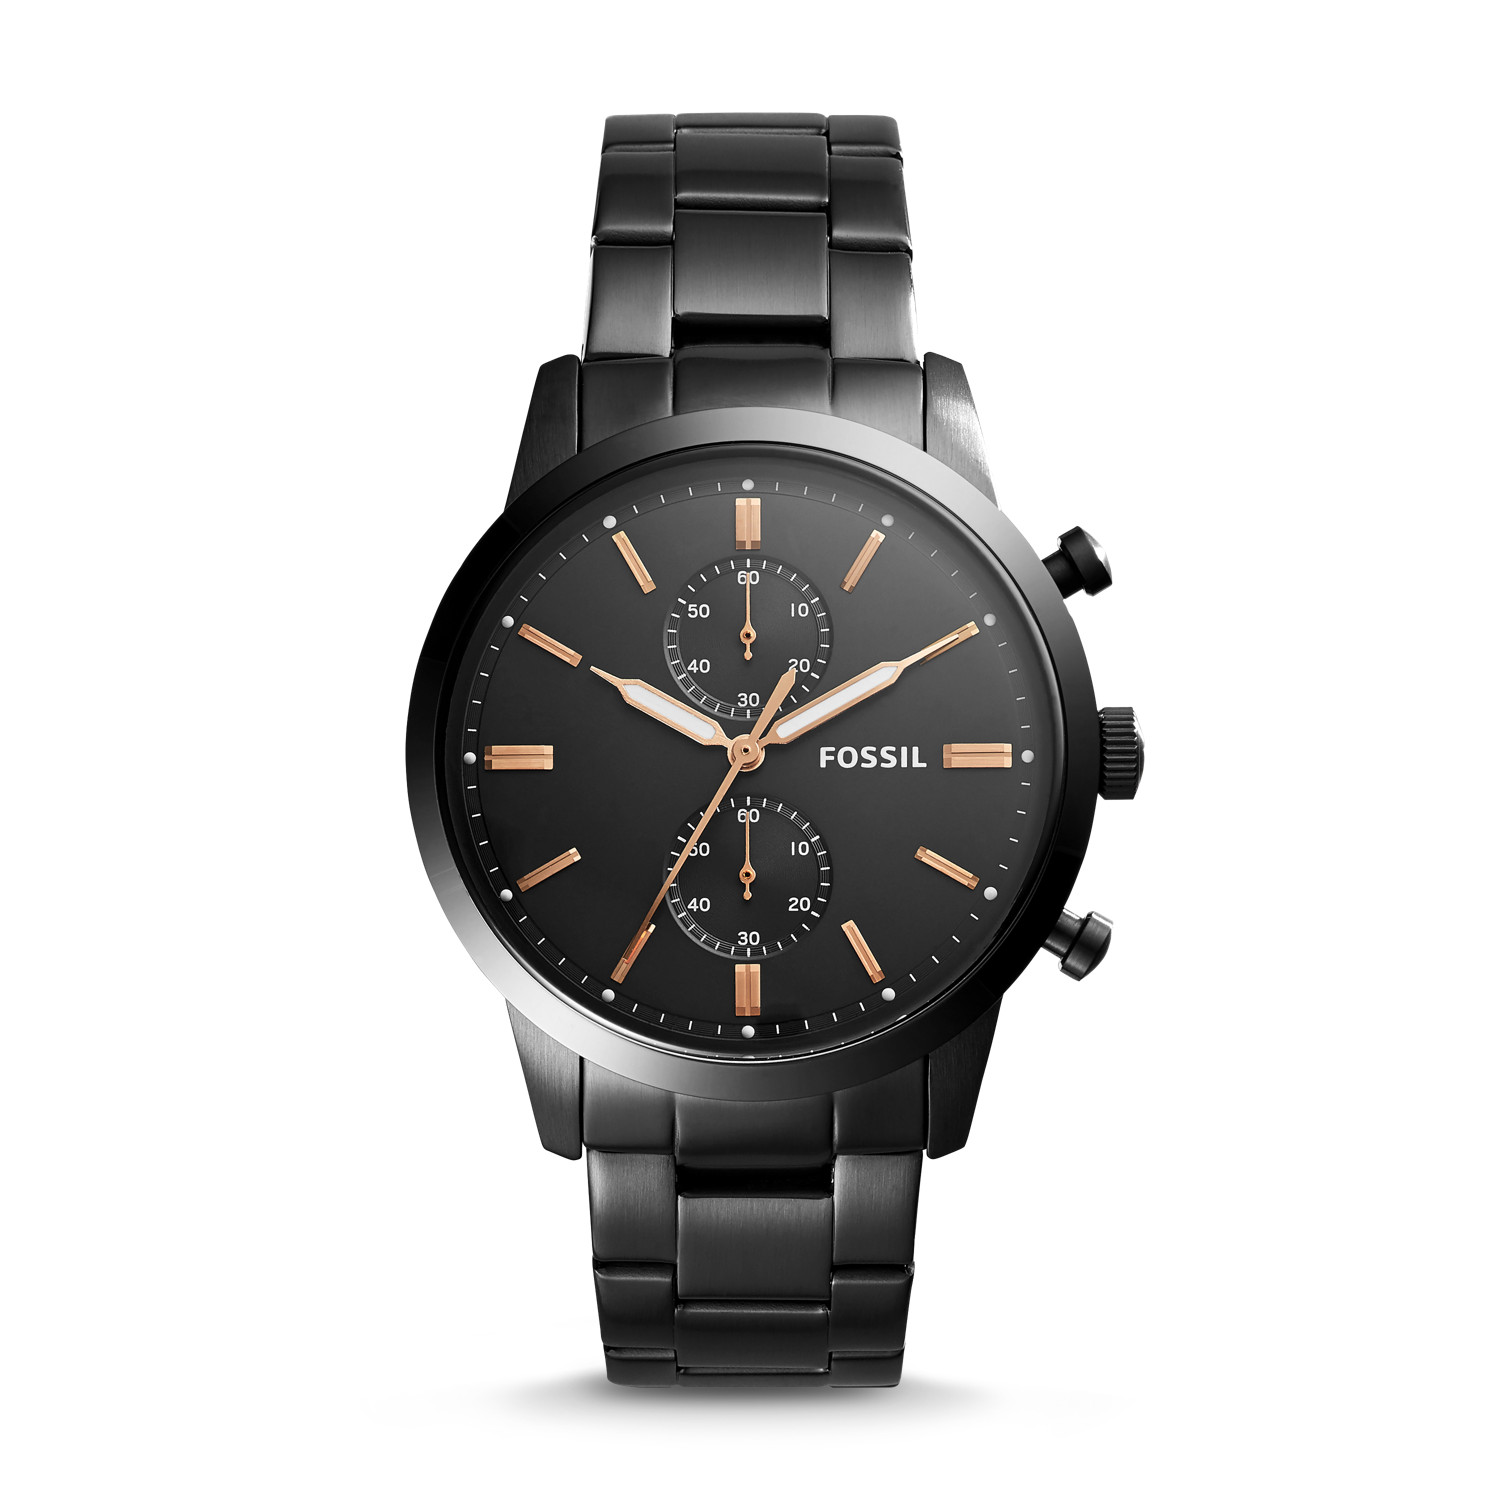 2f672072b Townsman 44mm Chronograph Black Stainless Steel Watch - Fossil